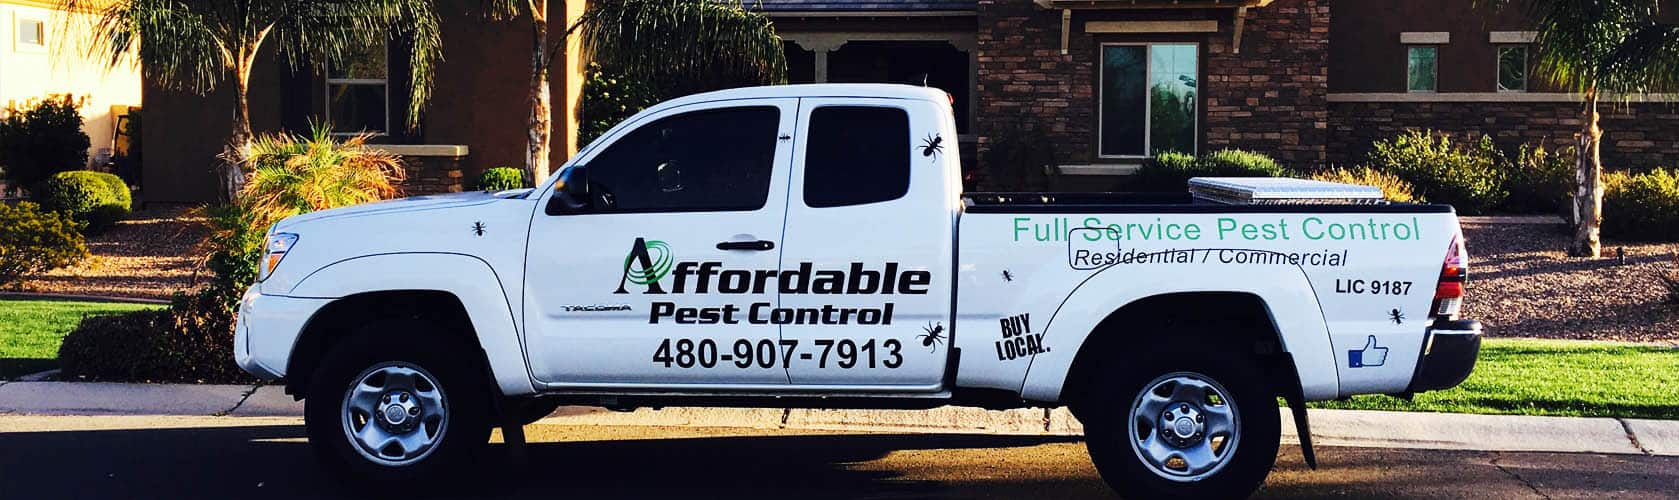 High Quality Pest Management Services | Full Service Pest Control | Affordable Pest Control